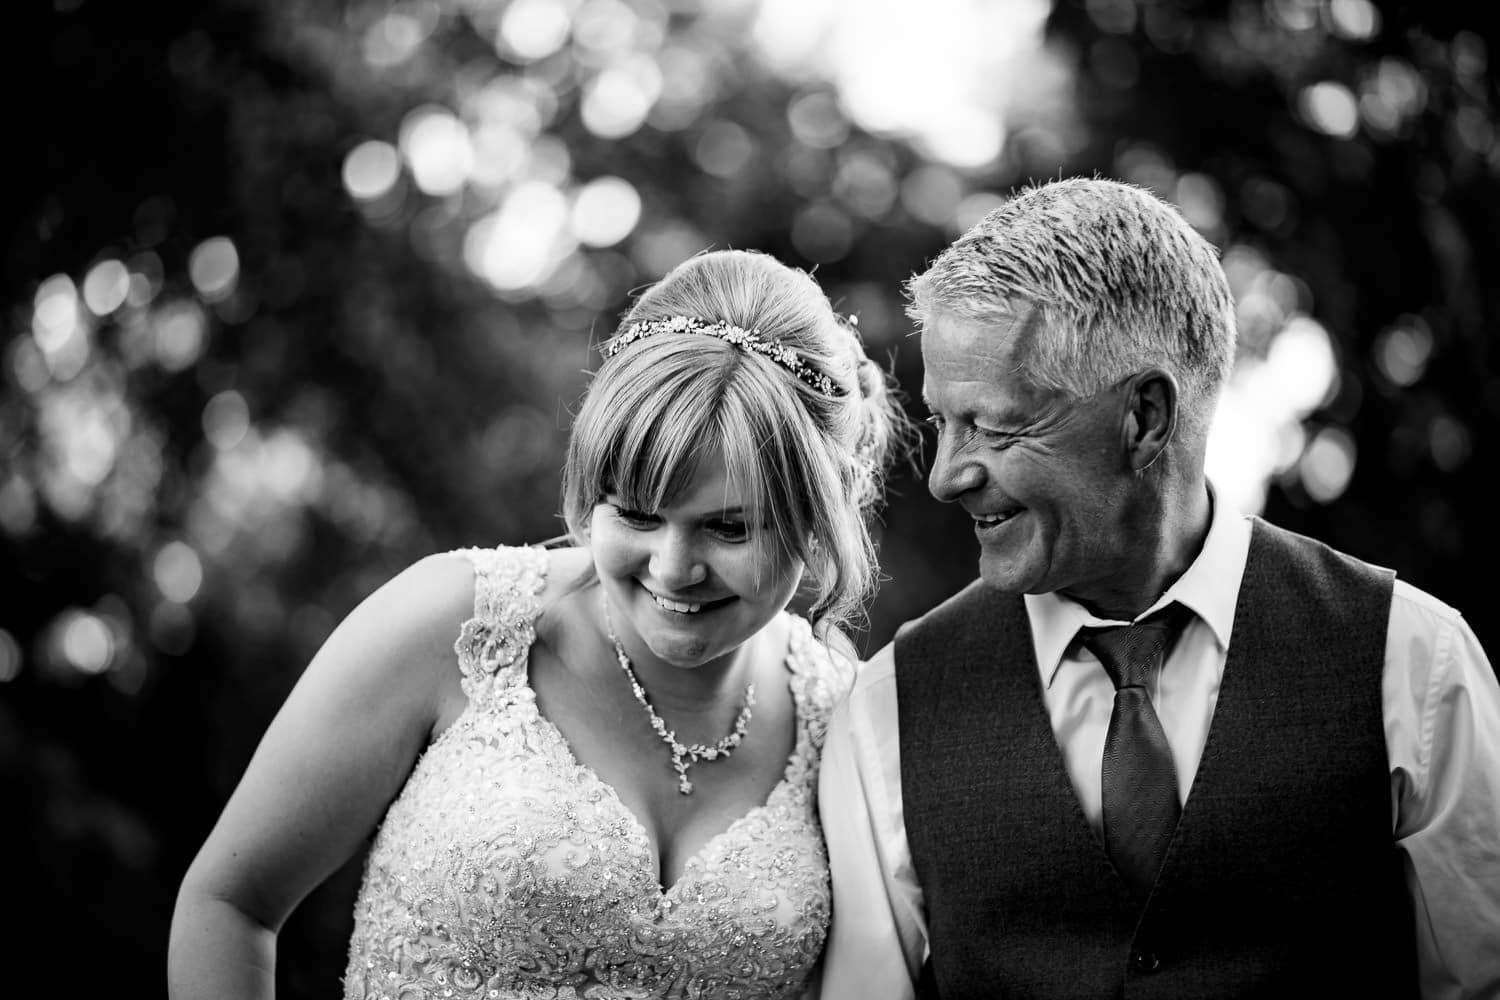 Warwick House Wedding Photography captures happy bride and dad smiling